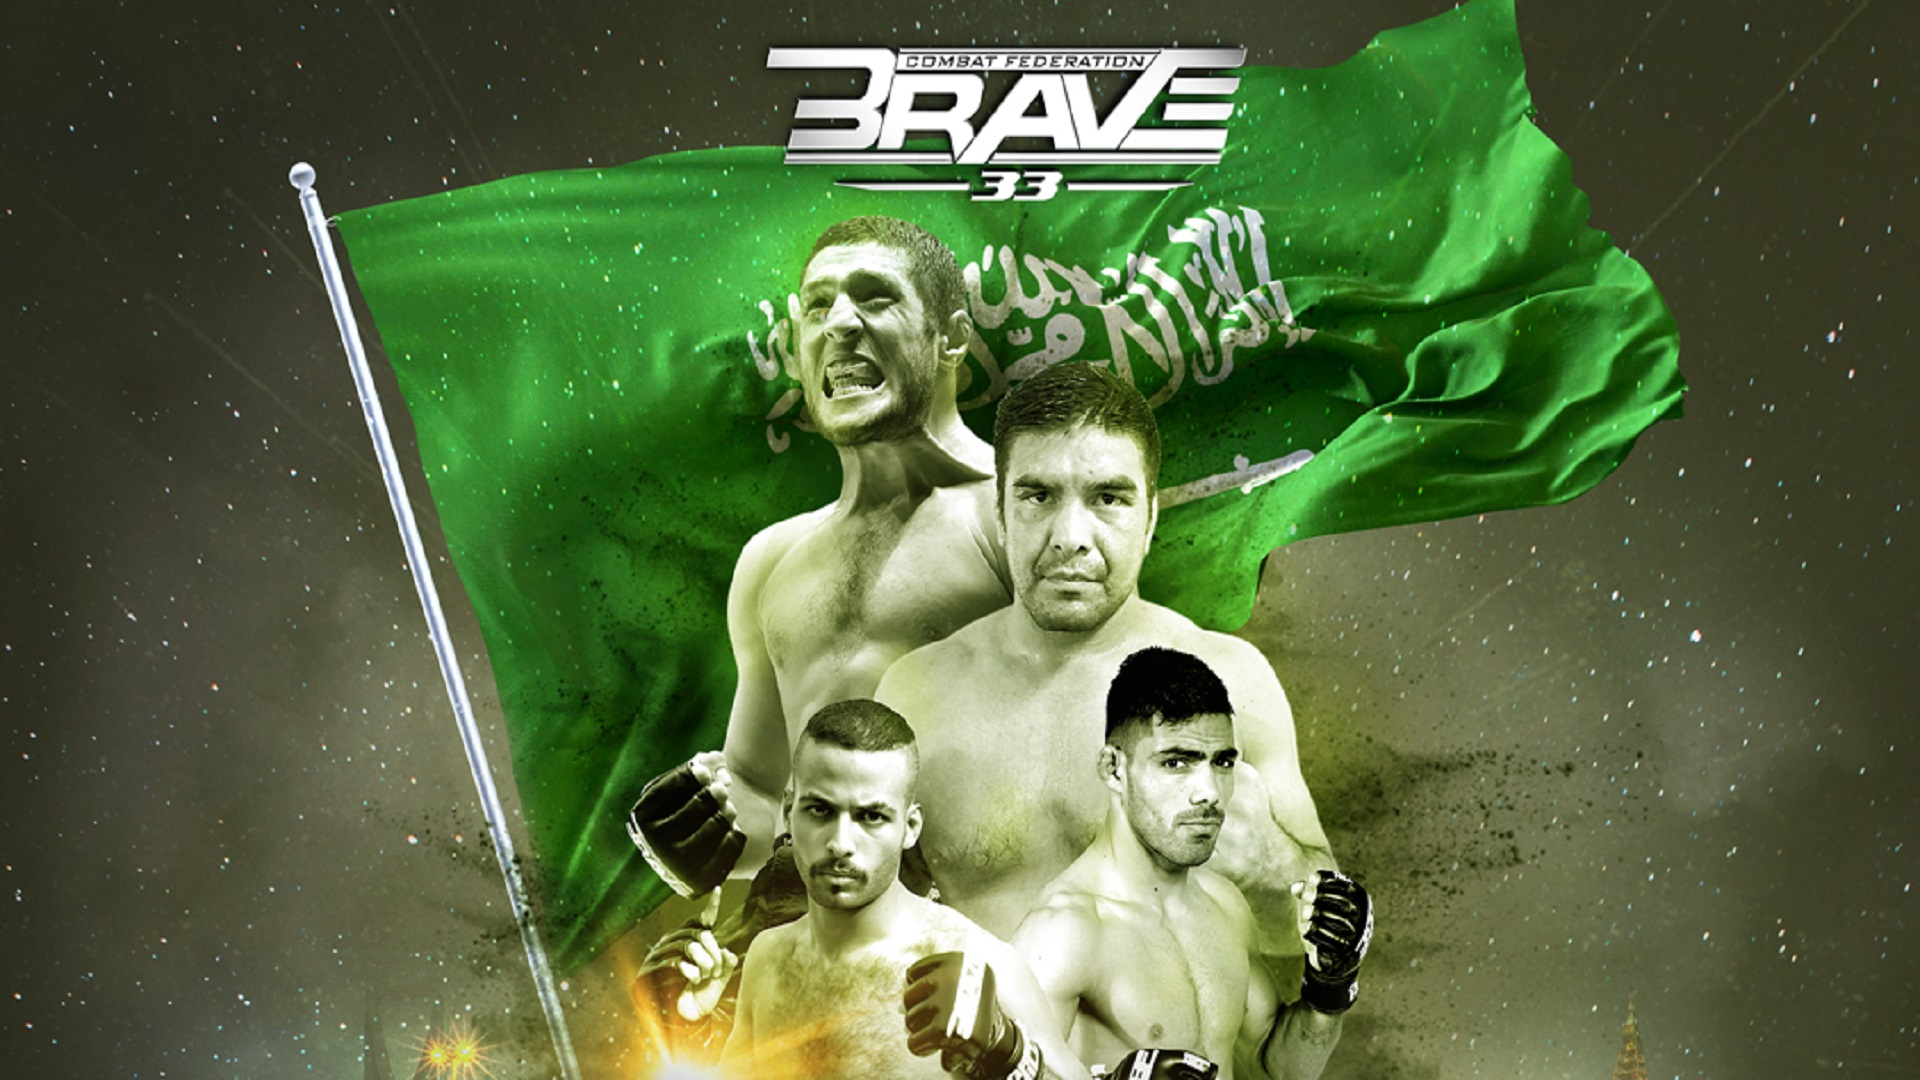 Brave-CF-33-Fight-Card-Saudi-Arabia